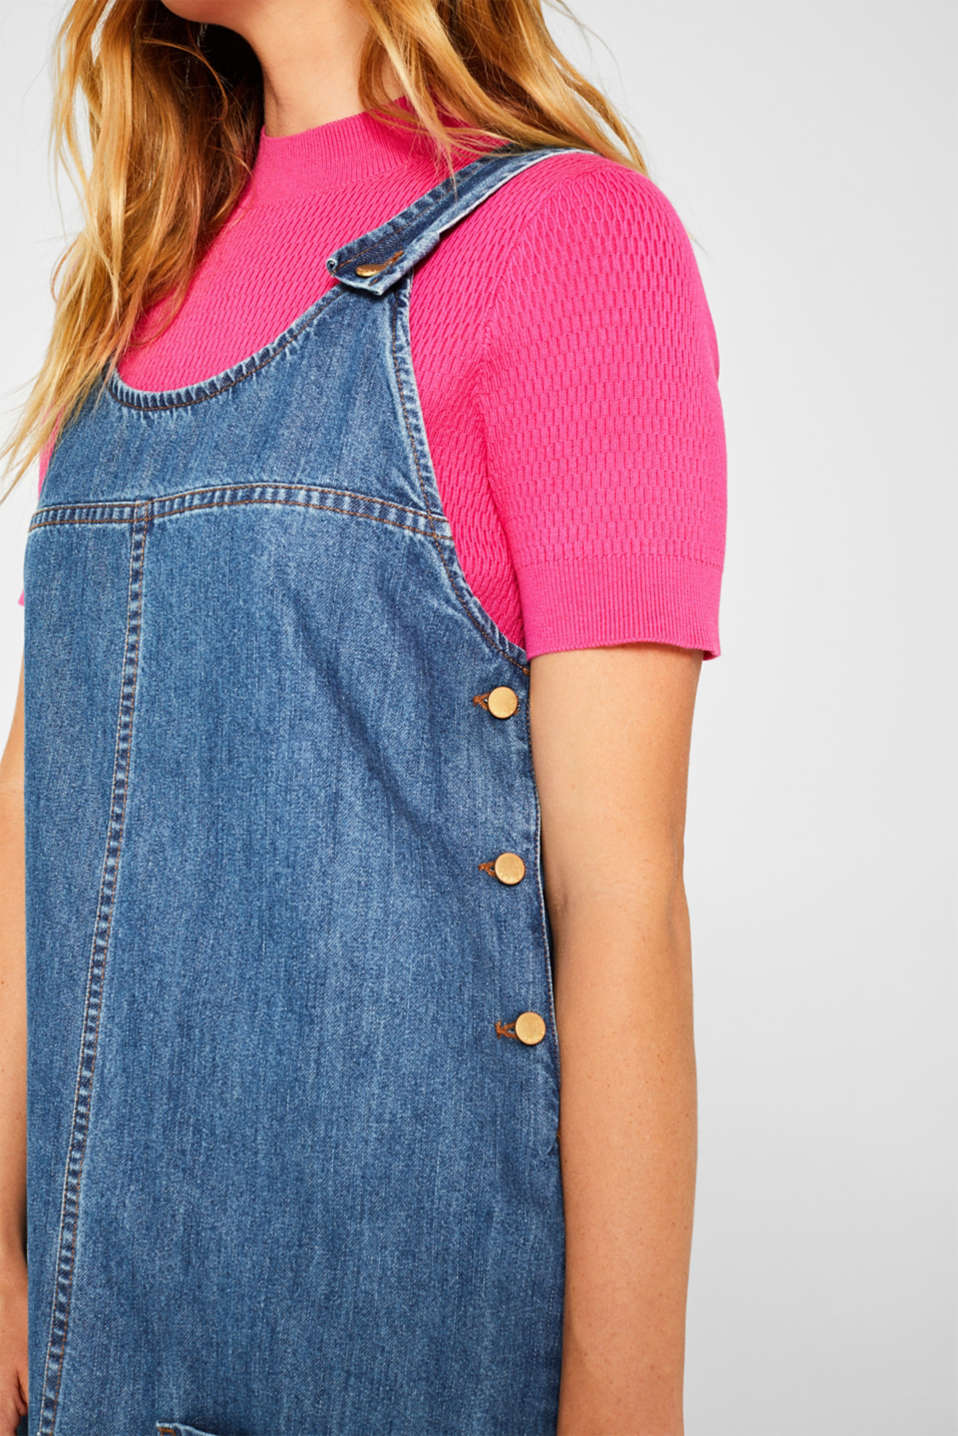 Denim dungaree dress, 100% cotton, BLUE MEDIUM WASH, detail image number 3